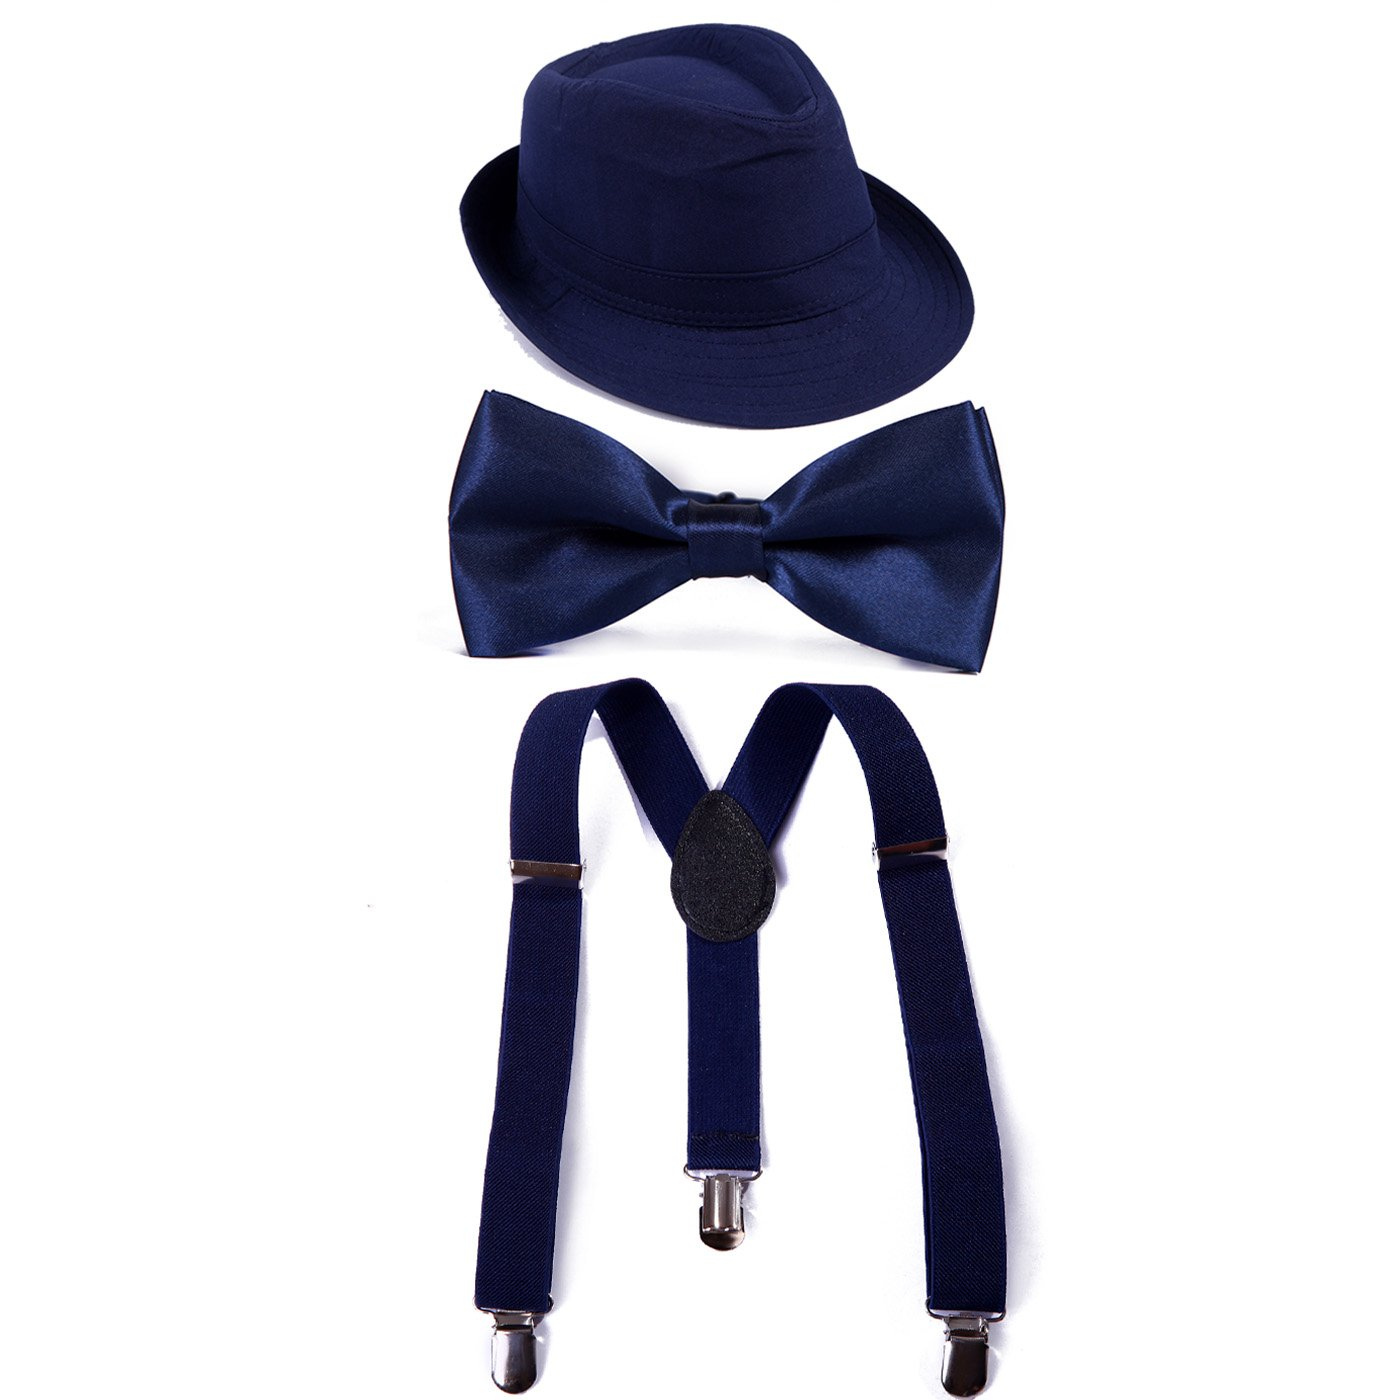 HDE Kid's Funky Design Solid Color Adjustable Elastic Clip Suspenders with Pre-tied Microfiber Neck Strap Bow tie and Short Brim Trilby Fedora Hat (Navy Blue)